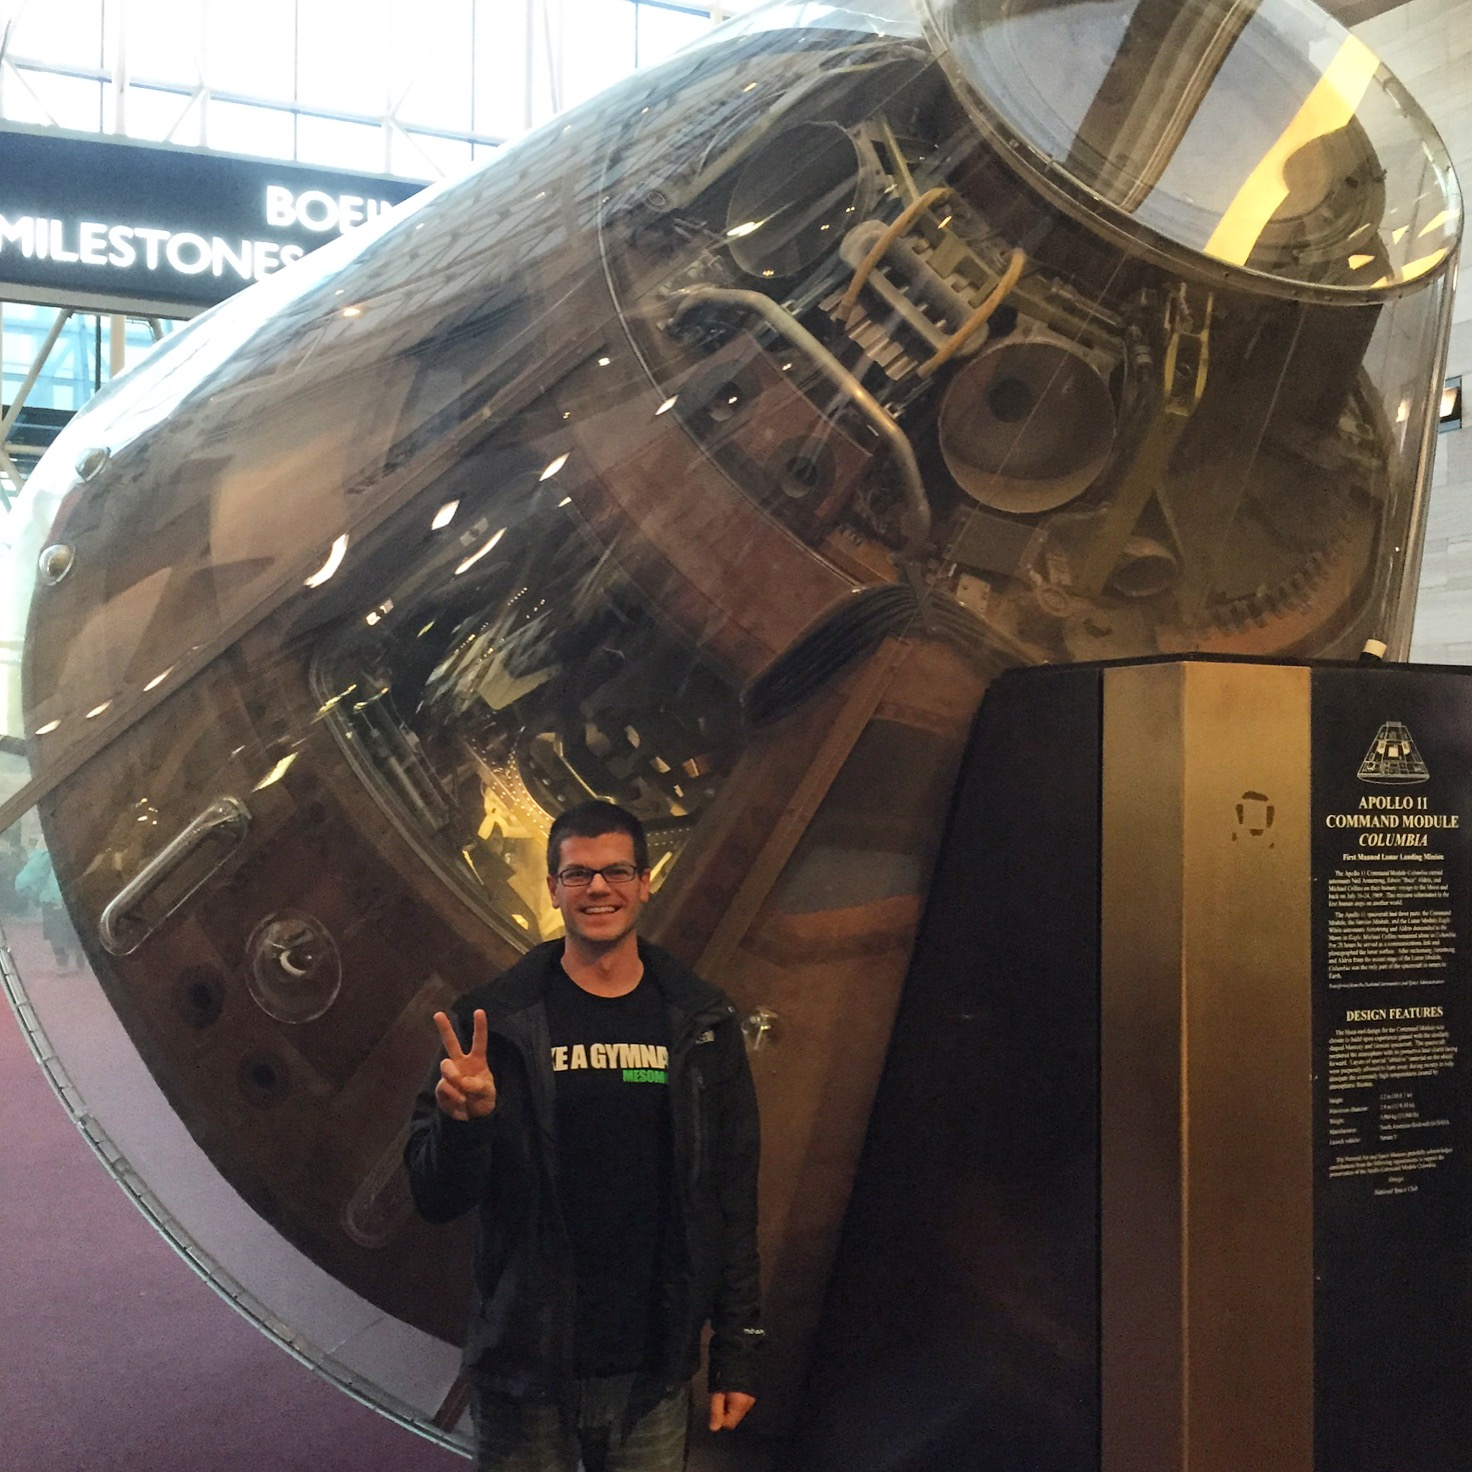 apollo 11 command module capsule